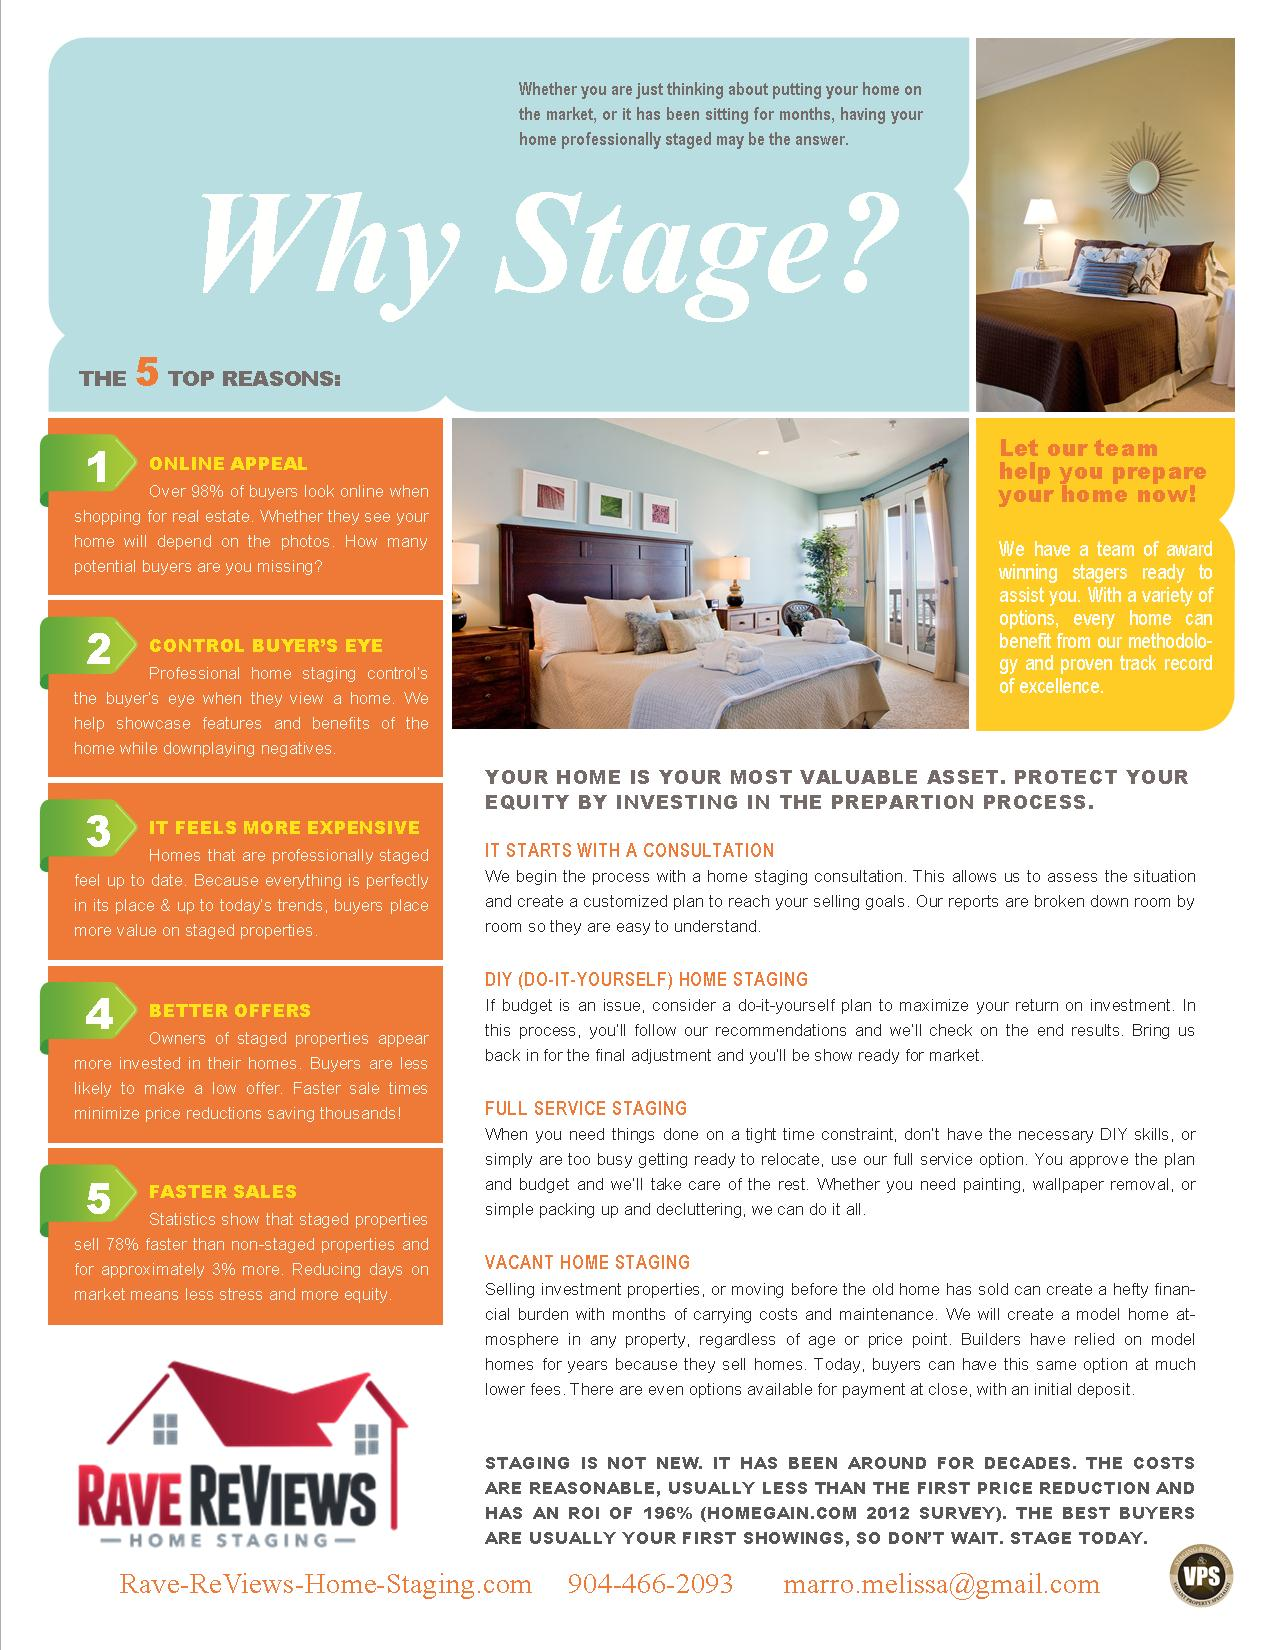 why stage flyer rave home staging training why should you have your home professionally staged